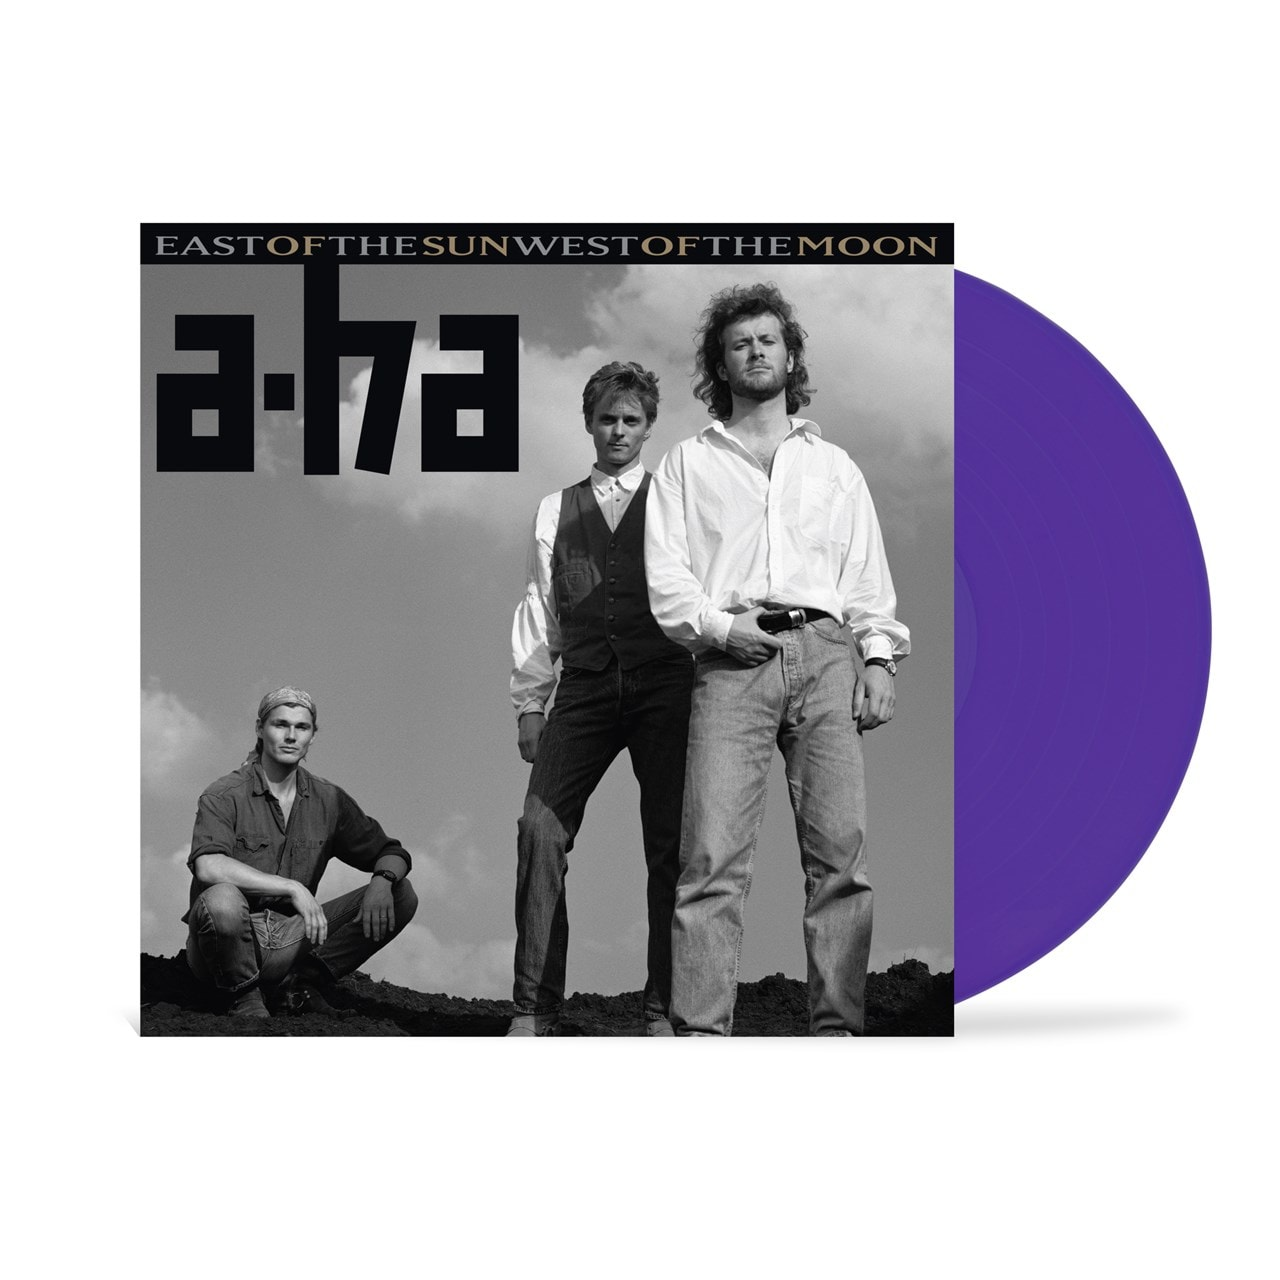 East of the Sun West of the Moon - Limited Edition Purple Vinyl (NAD20) - 1